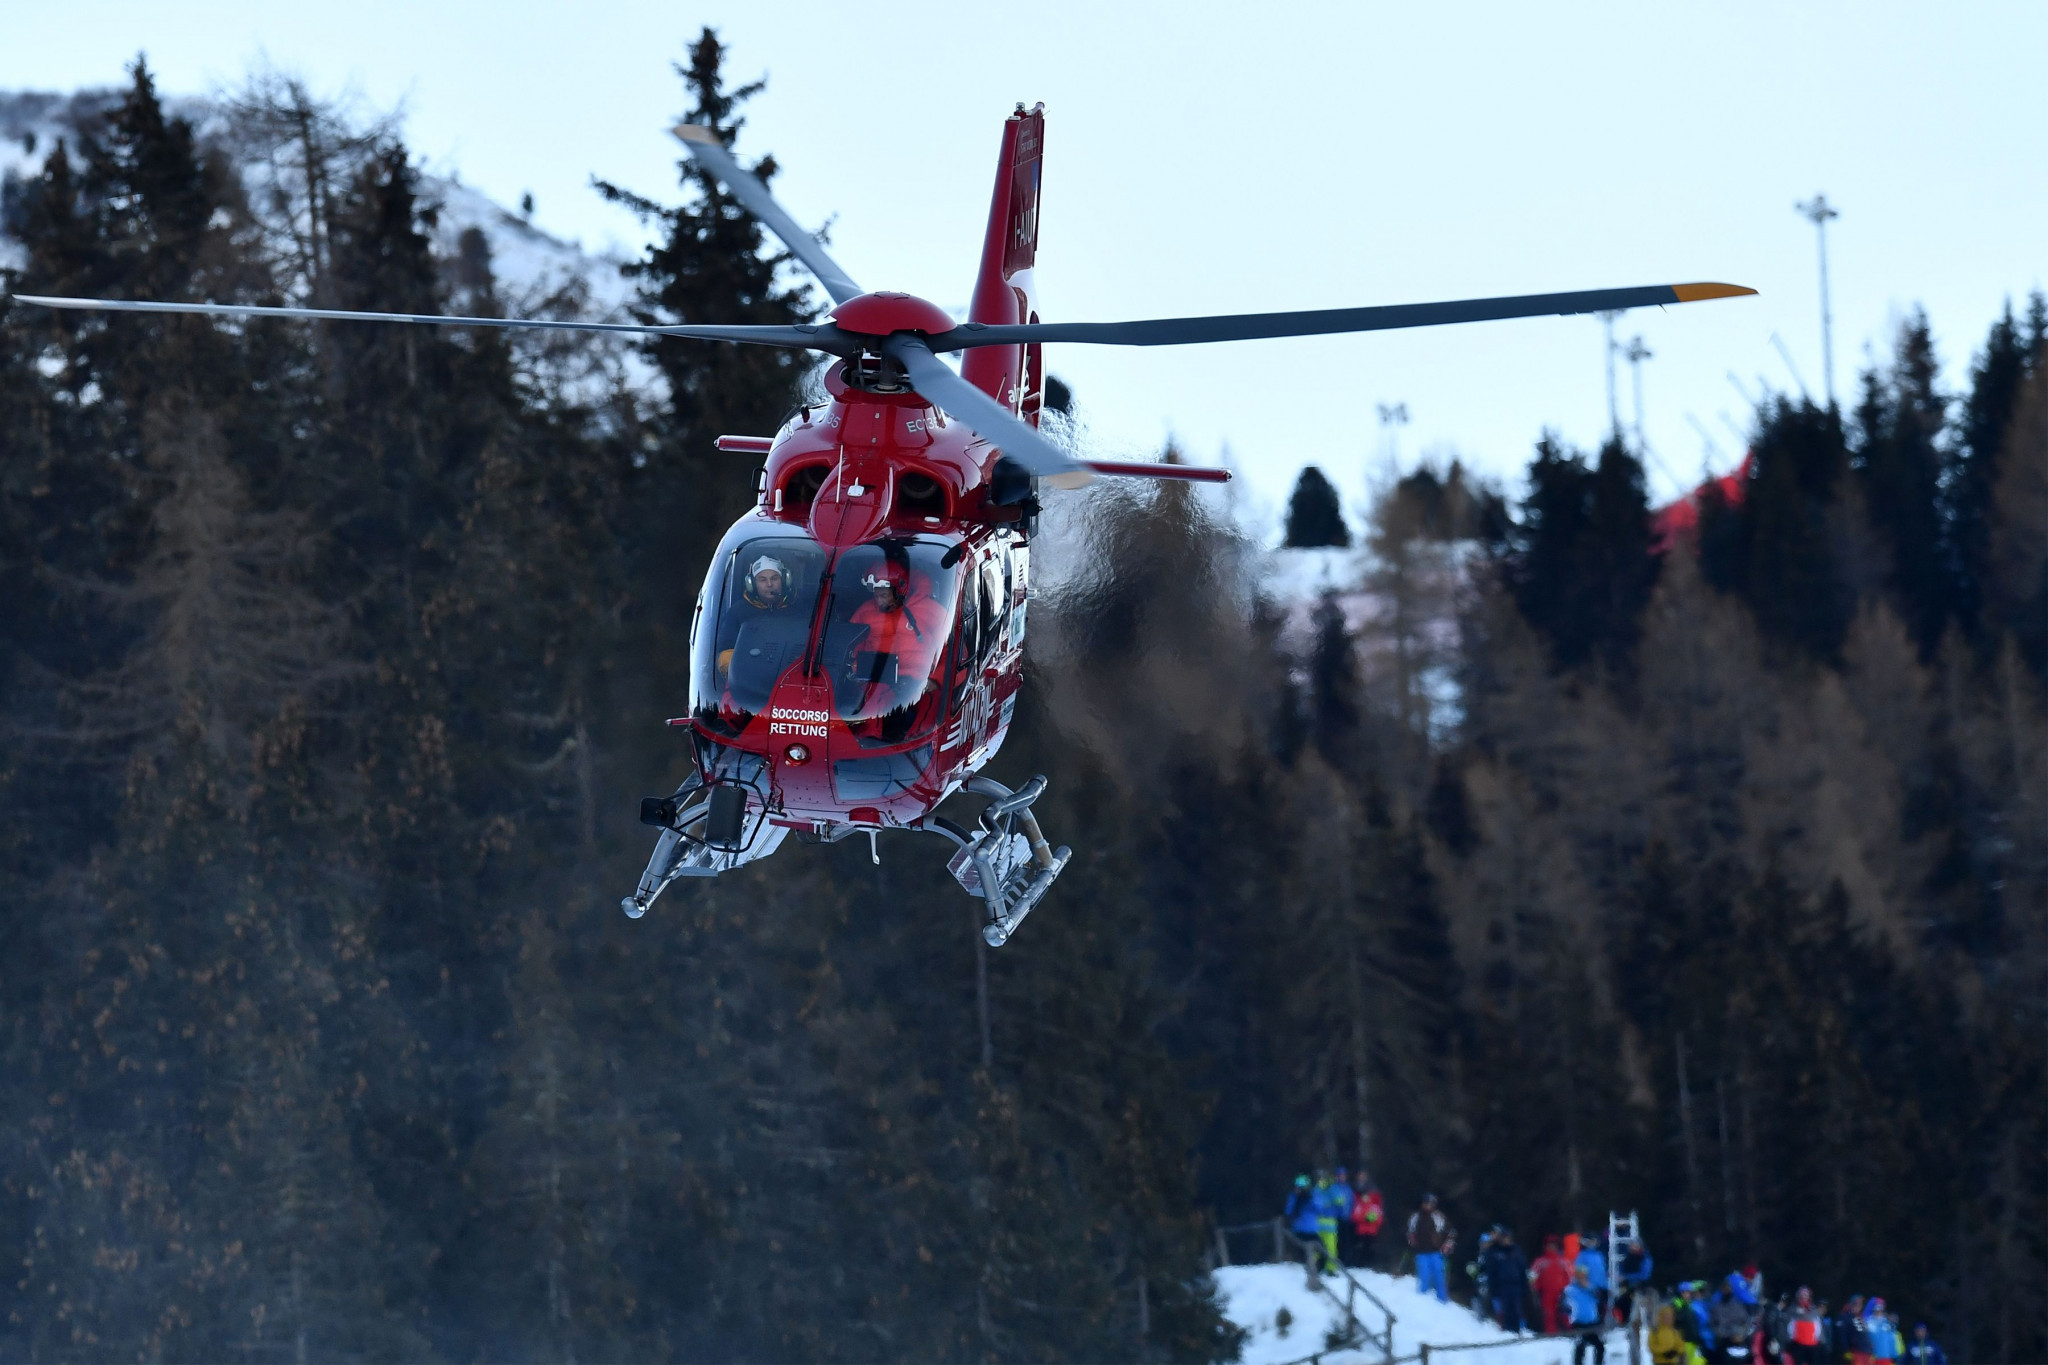 A helicopter airlifts Marc Gisin from the course after his serious crash ©Getty Images